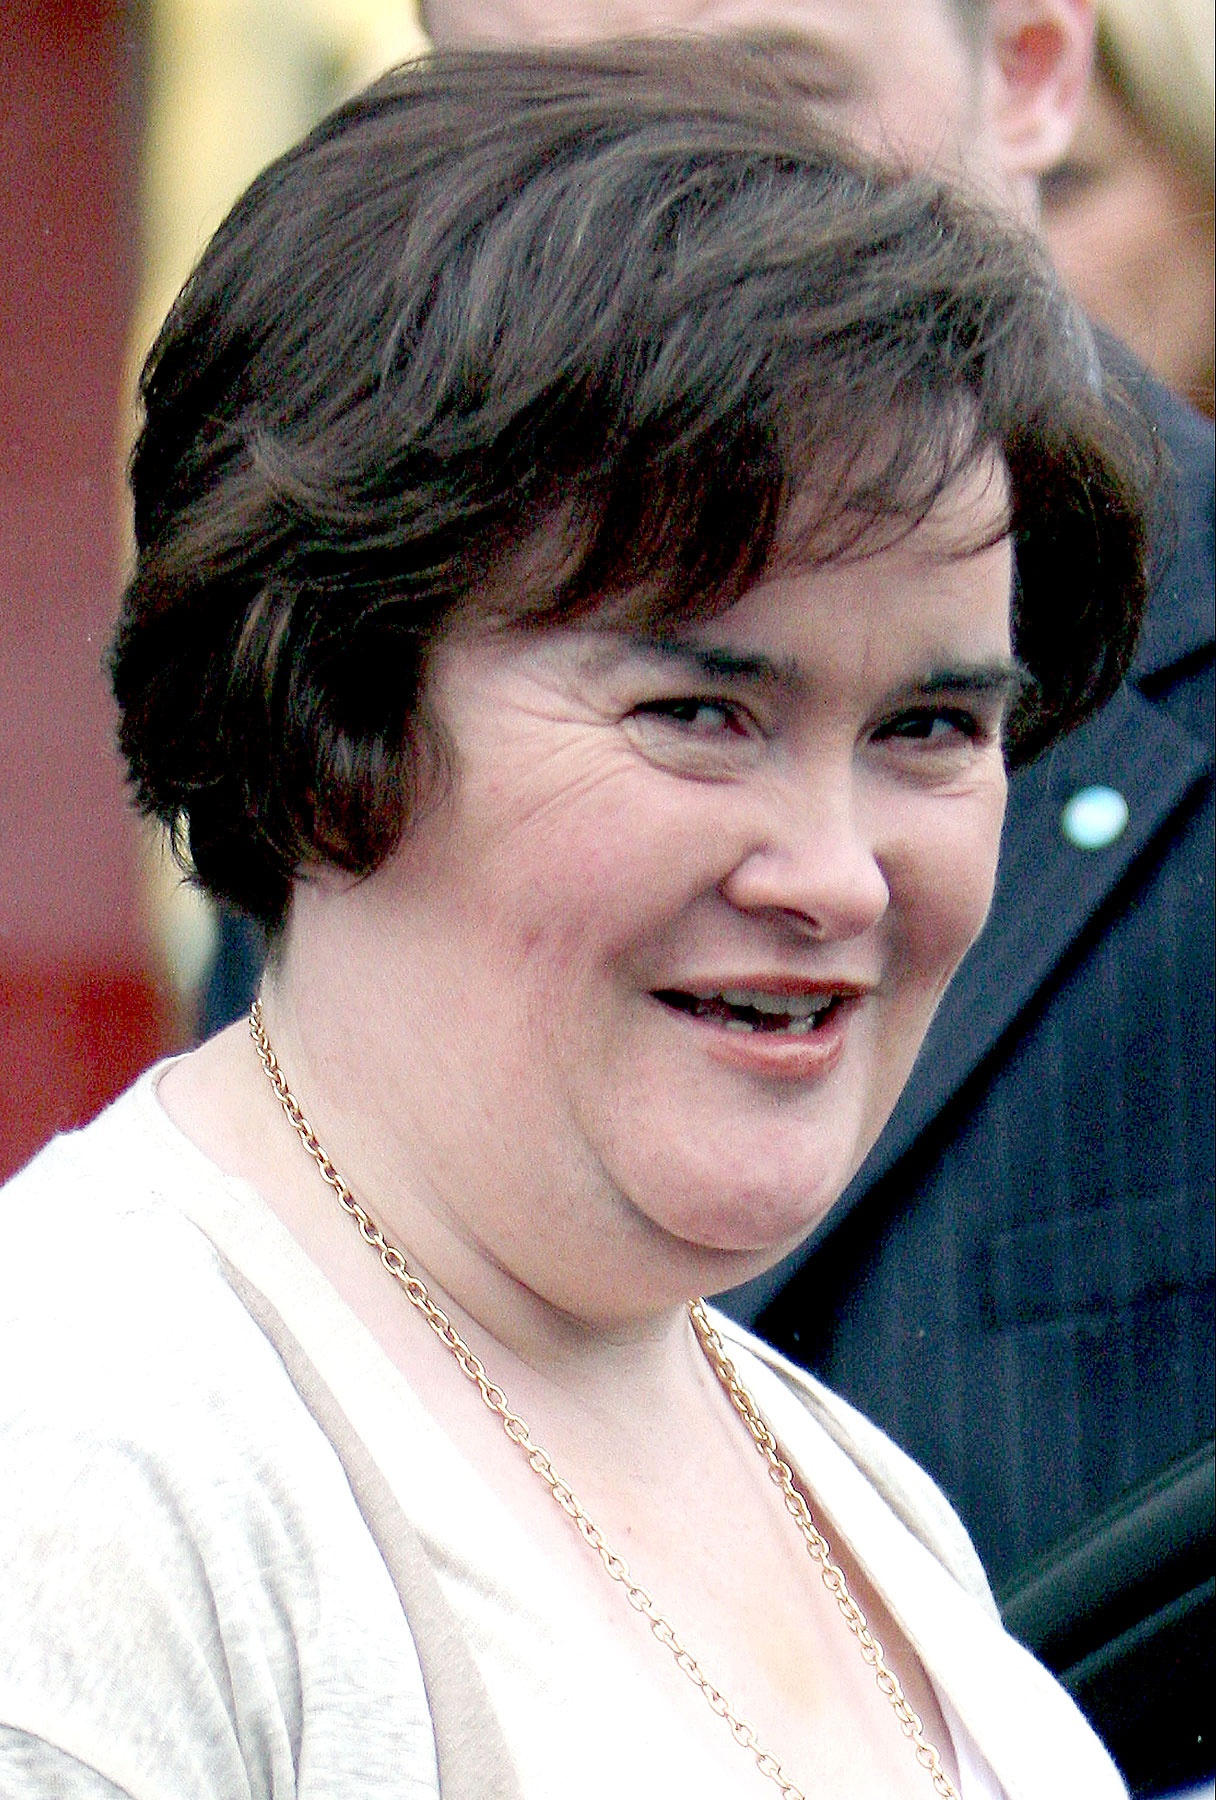 Susan Boyle: Ready for Round Two